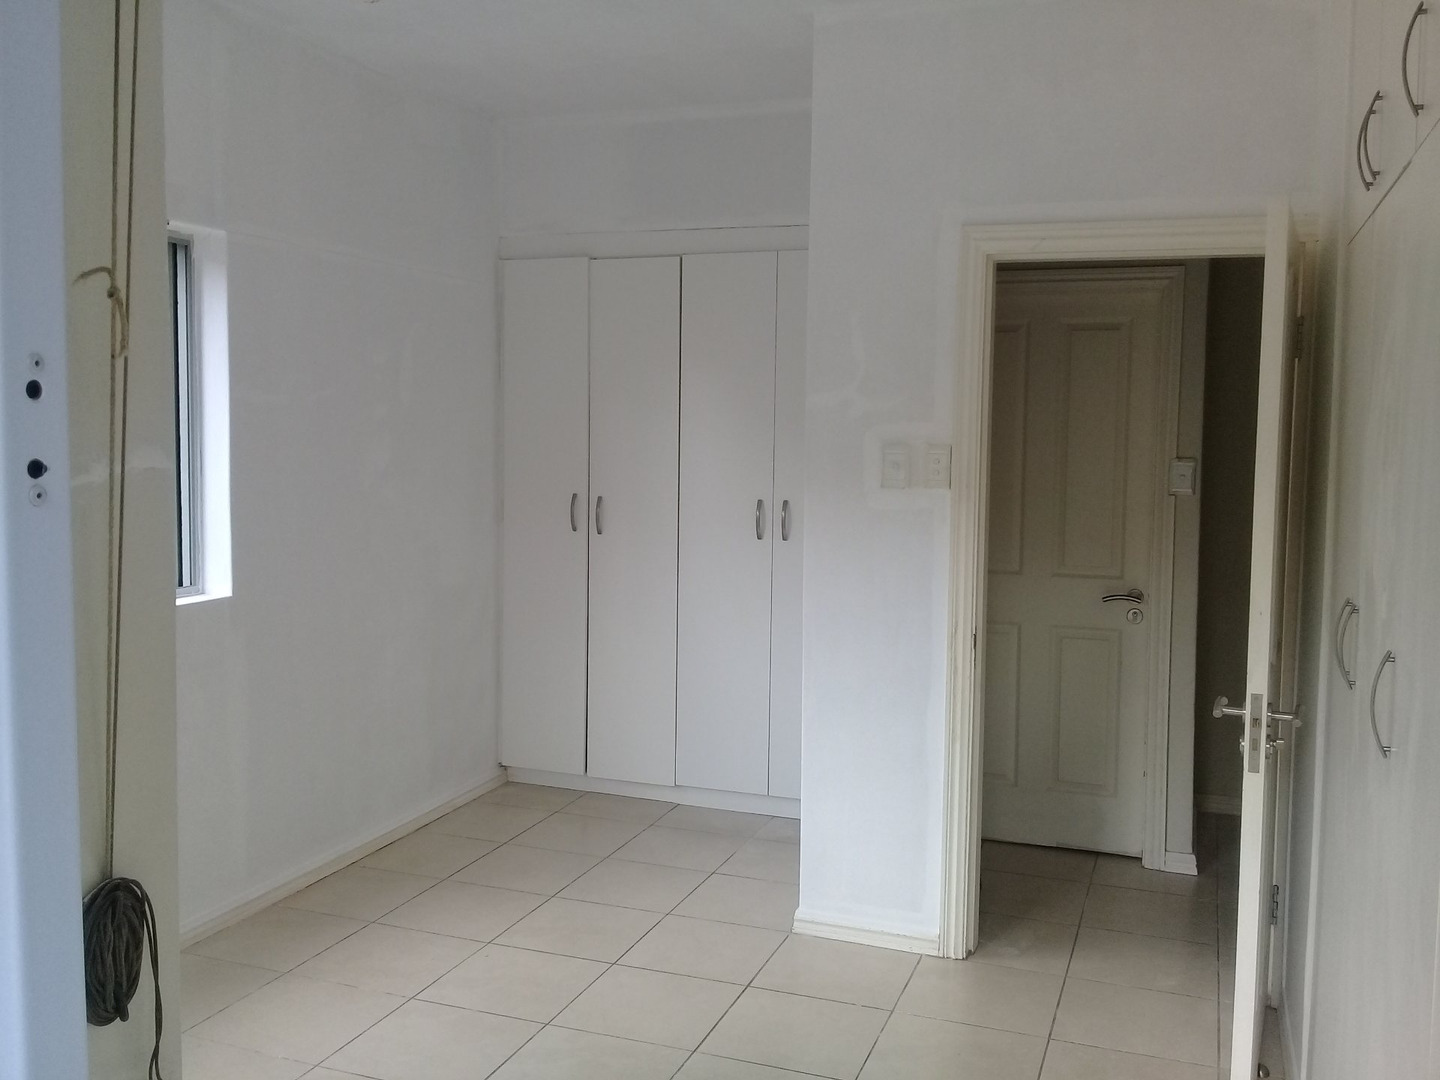 2 Bedroom Apartment for sale in Windermere 1831184 : photo#3